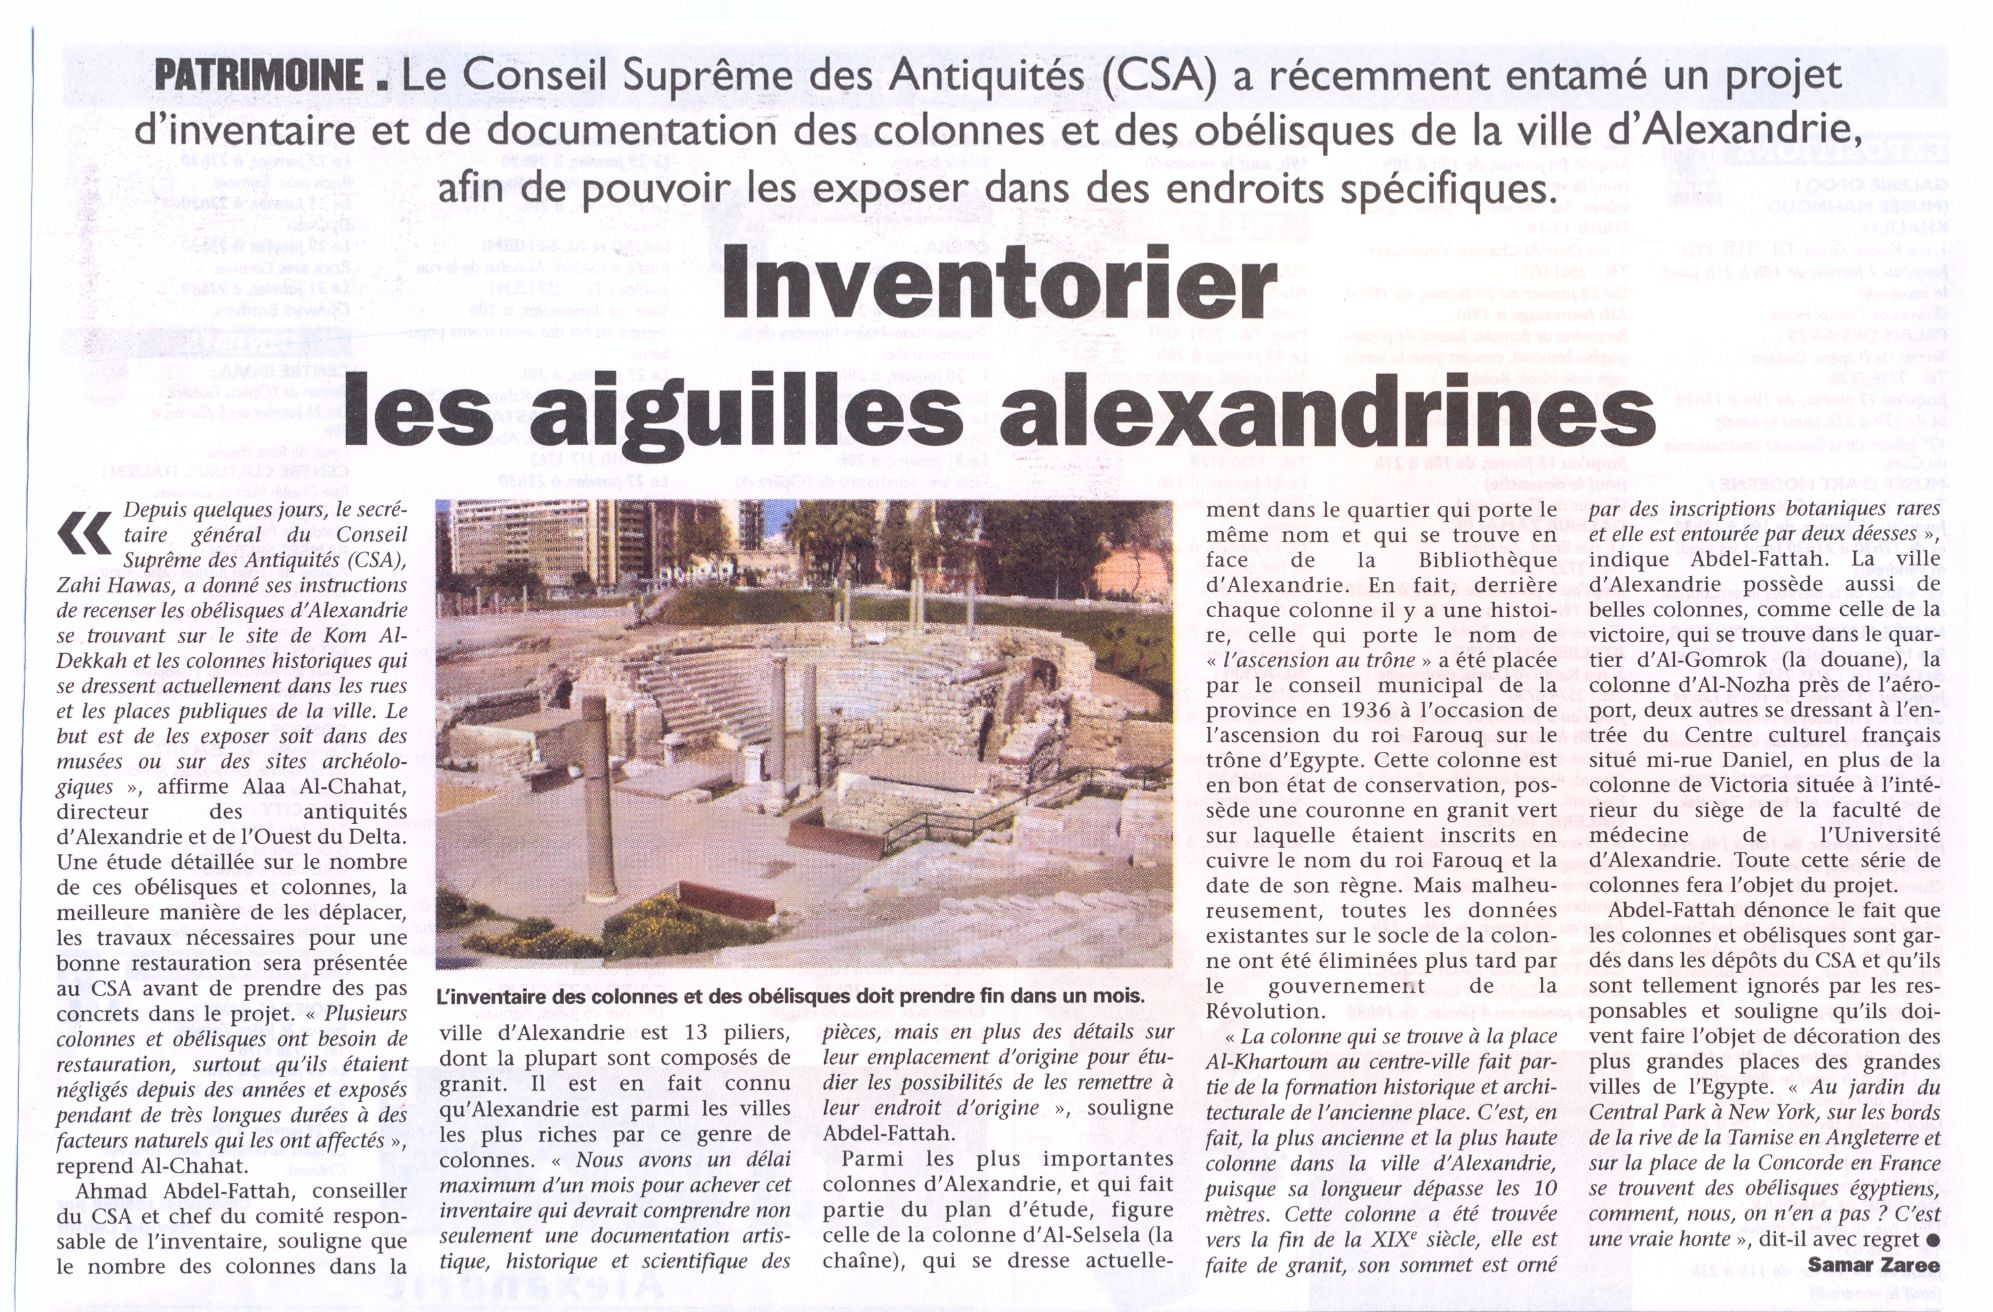 INVENTORIER LES AIGUILLES ALEXANRINES